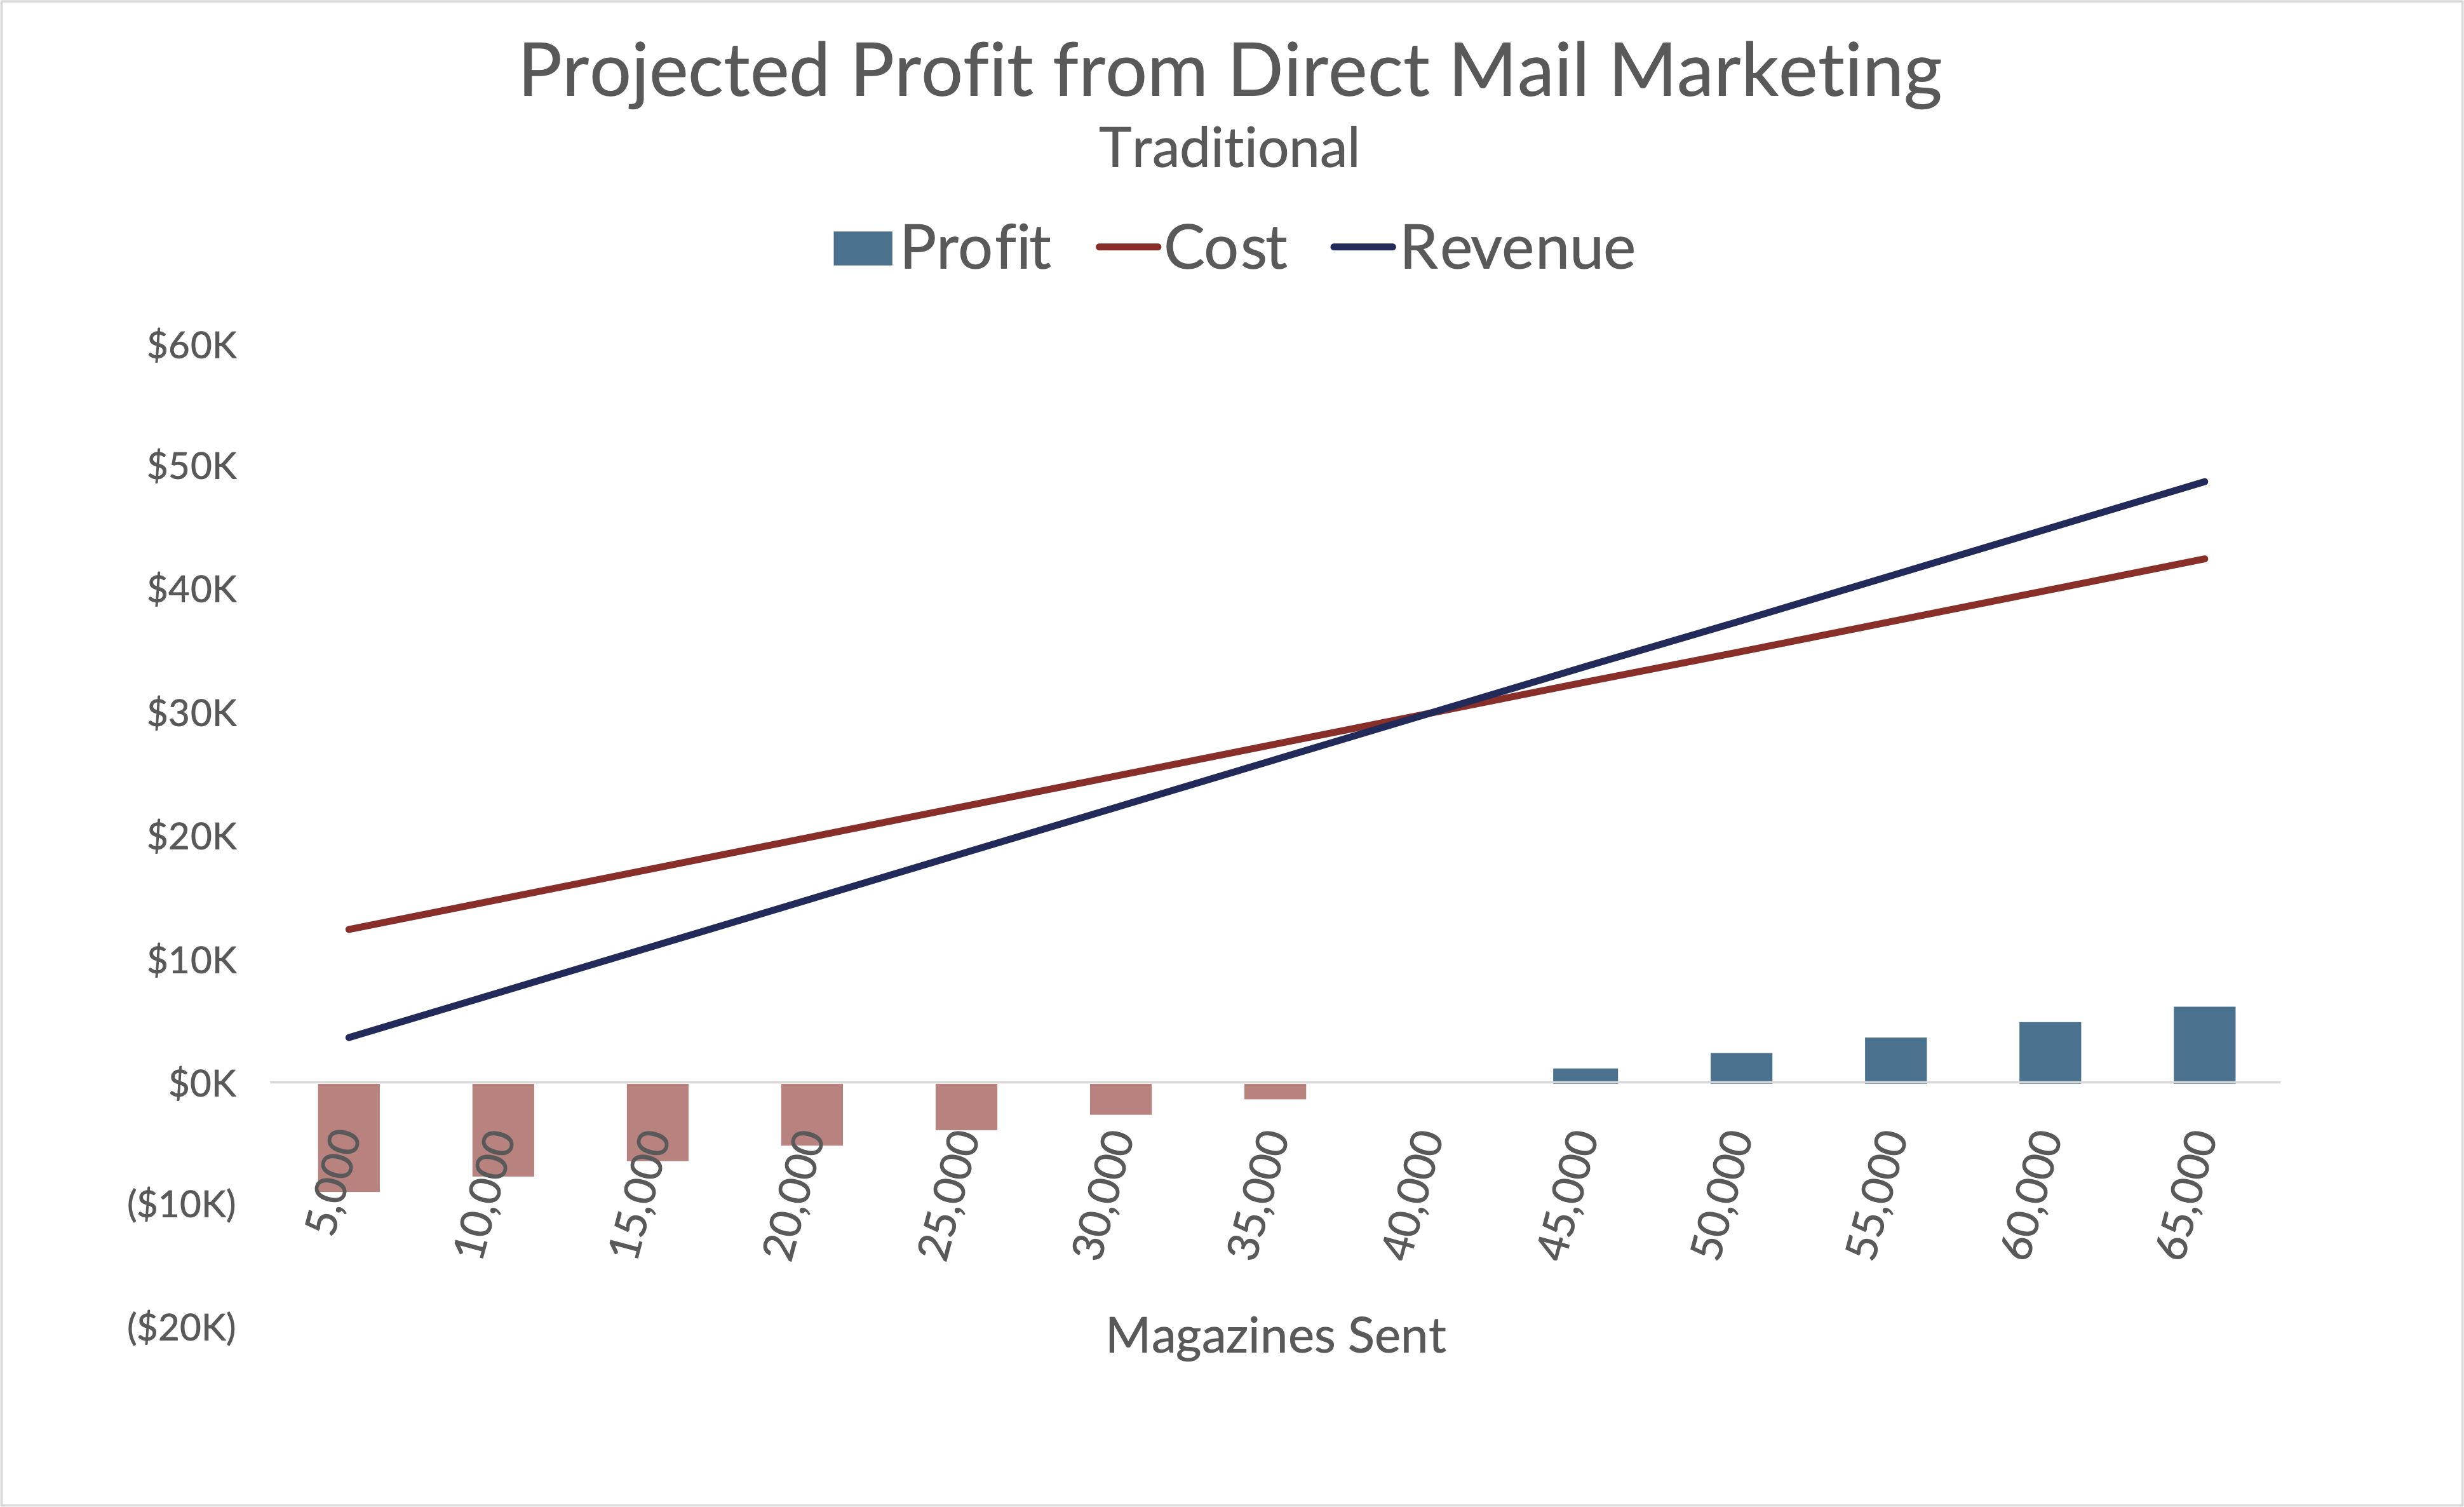 A graph of the profit from a traditional direct mail marketing approach